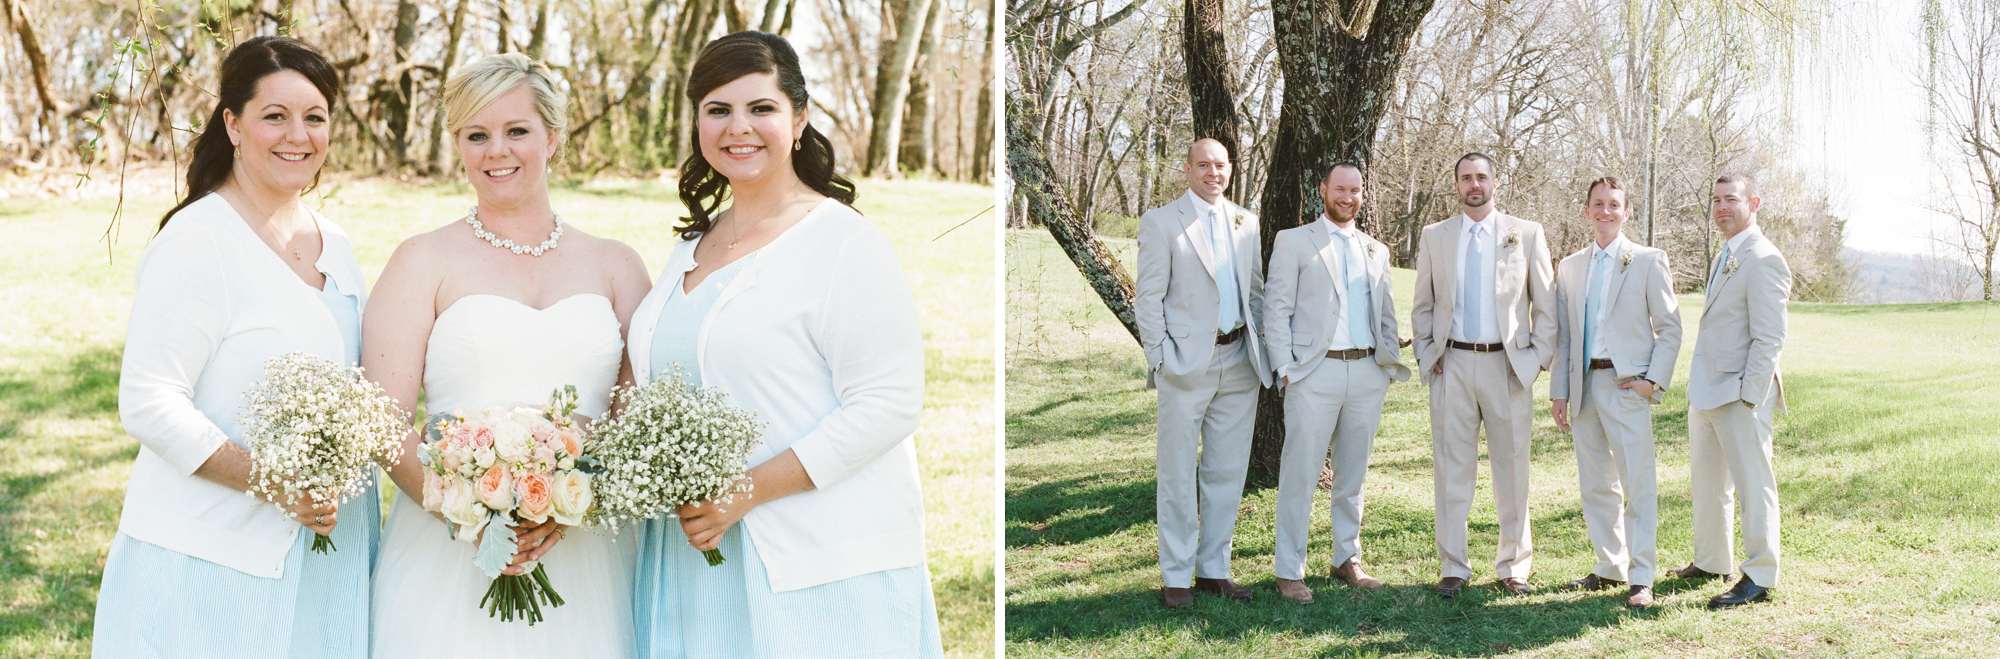 tennessee film wedding photographer_0028